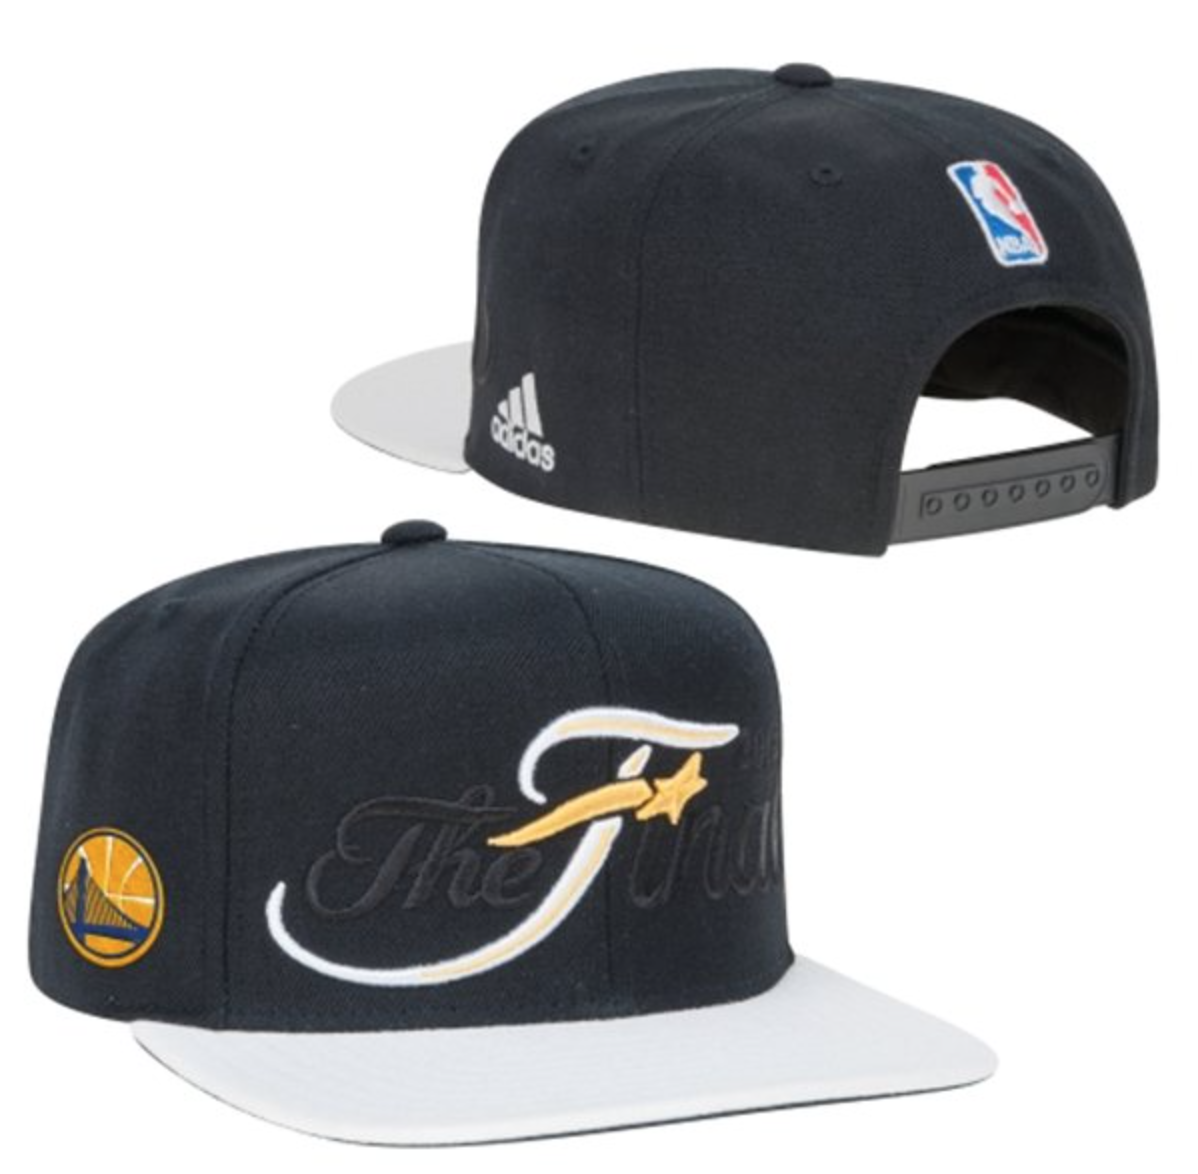 e8a86b53879 Golden State Warriors adidas 2015 Western Conference Champions adjustable  Hat as worn by the players on court!